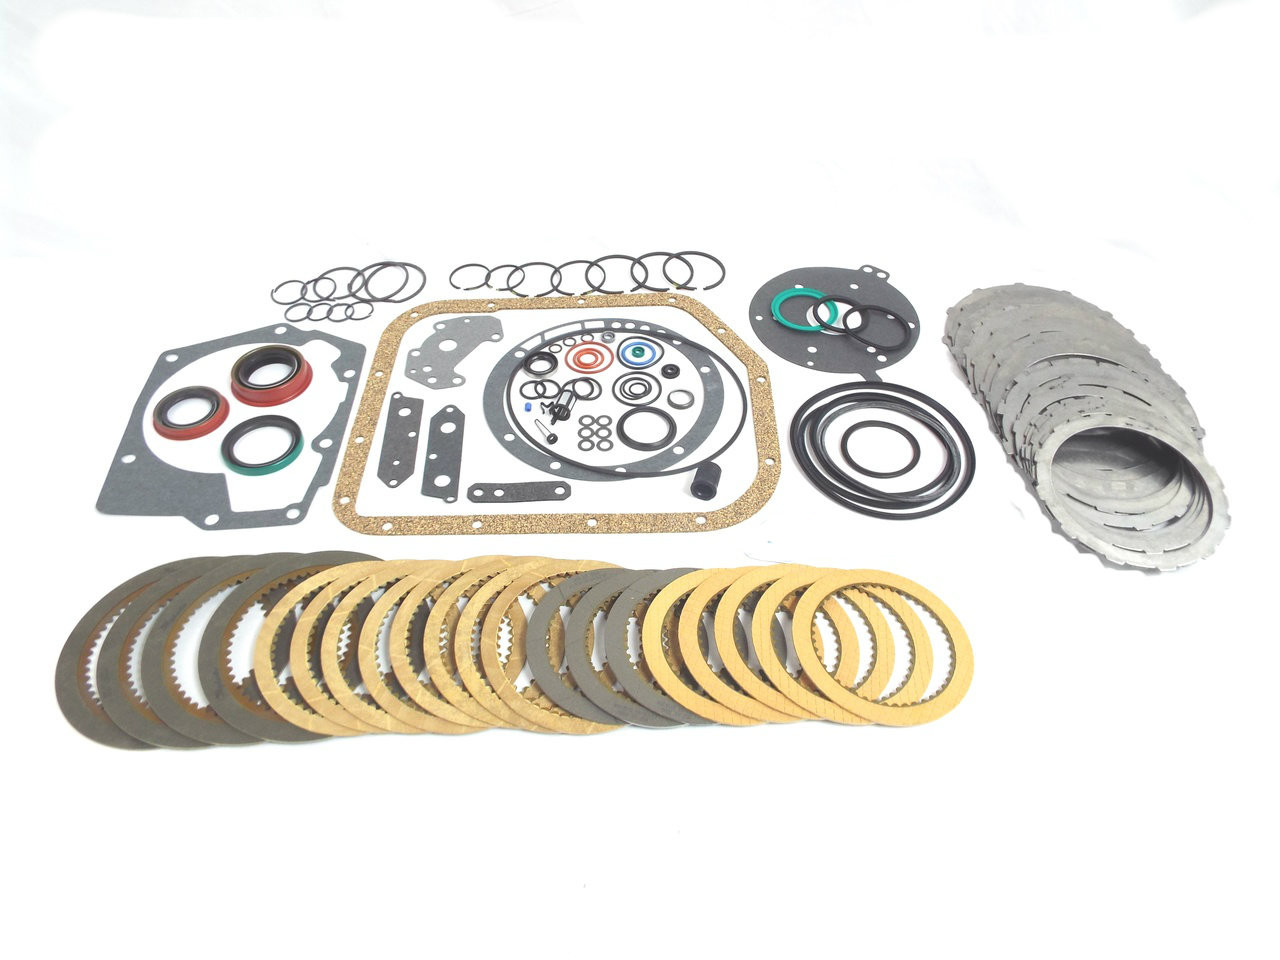 3f023853c8a All Years Master Rebuild Kit A500 40RH 42RH 42RE 44RE 40RE - Best ...